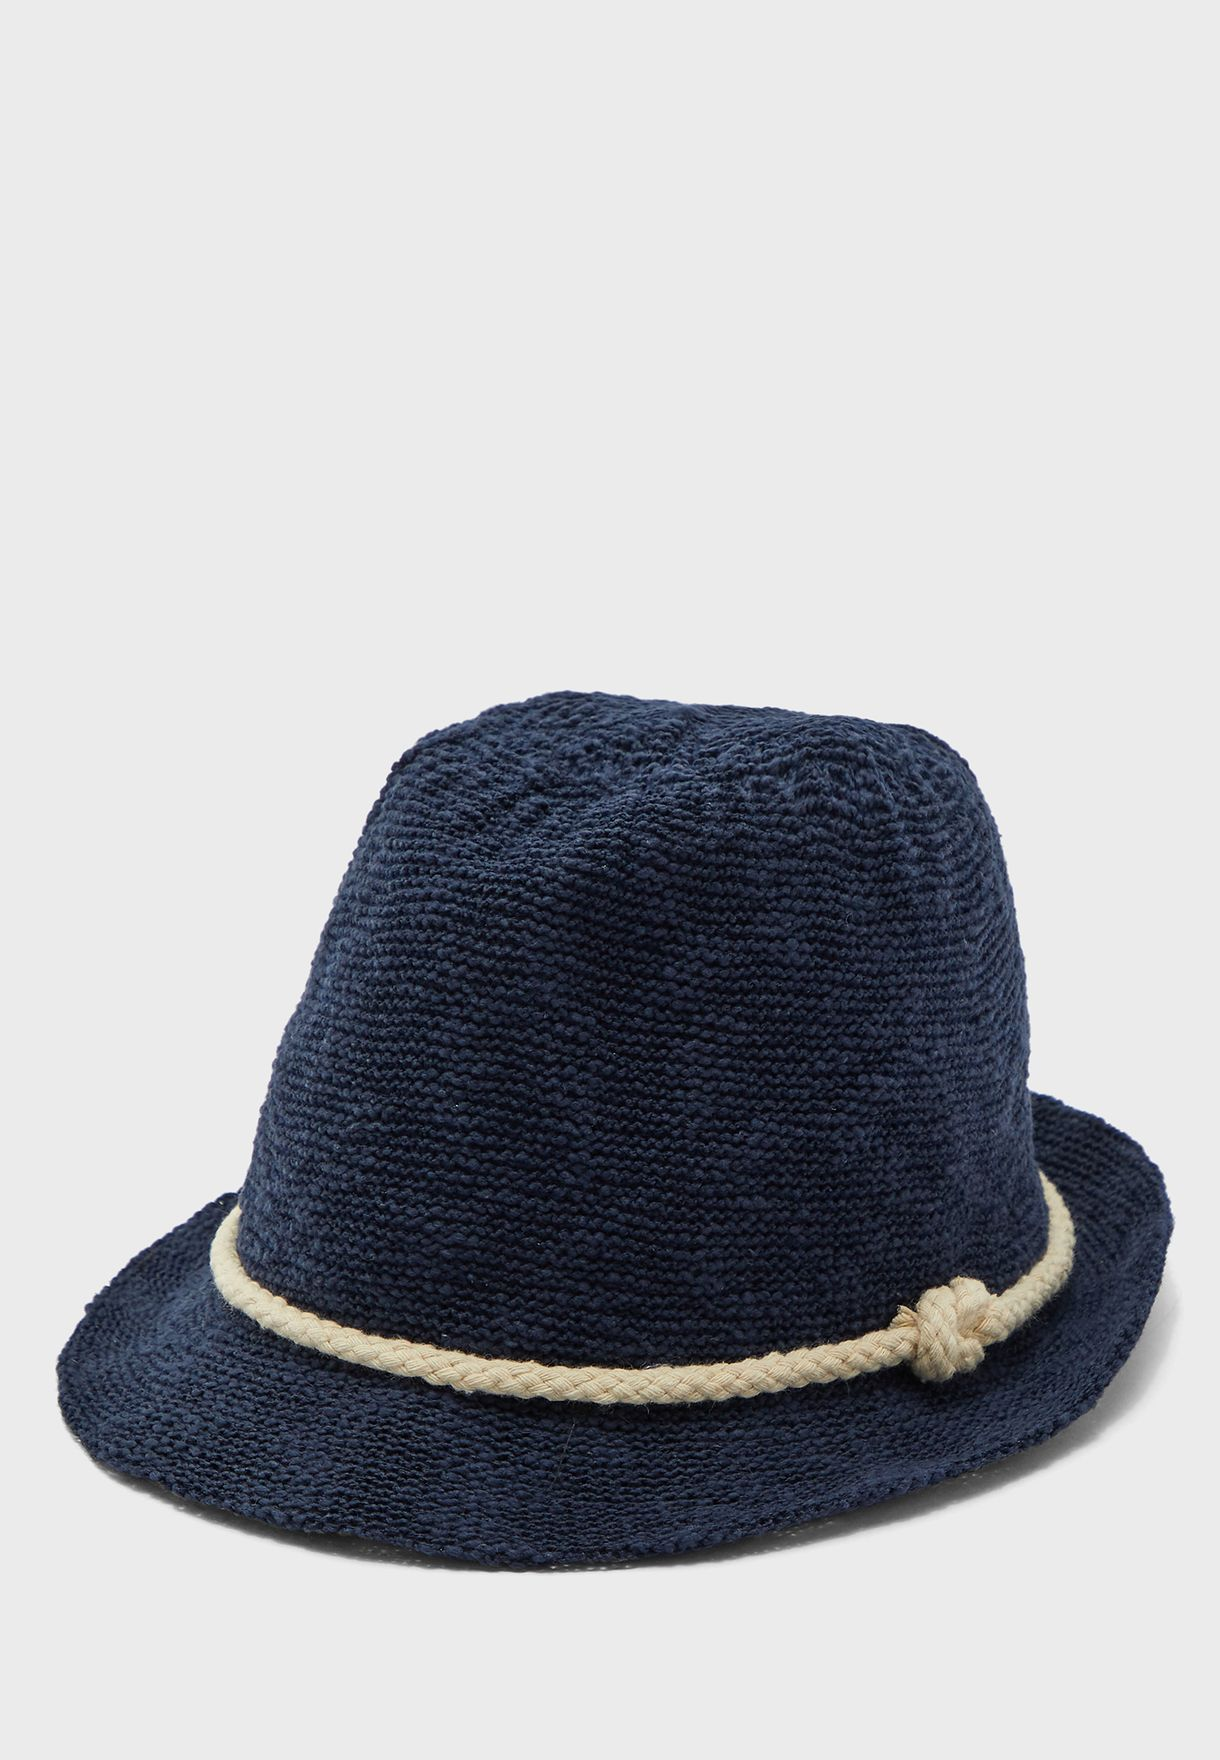 Kids Floppy Bucket Hat